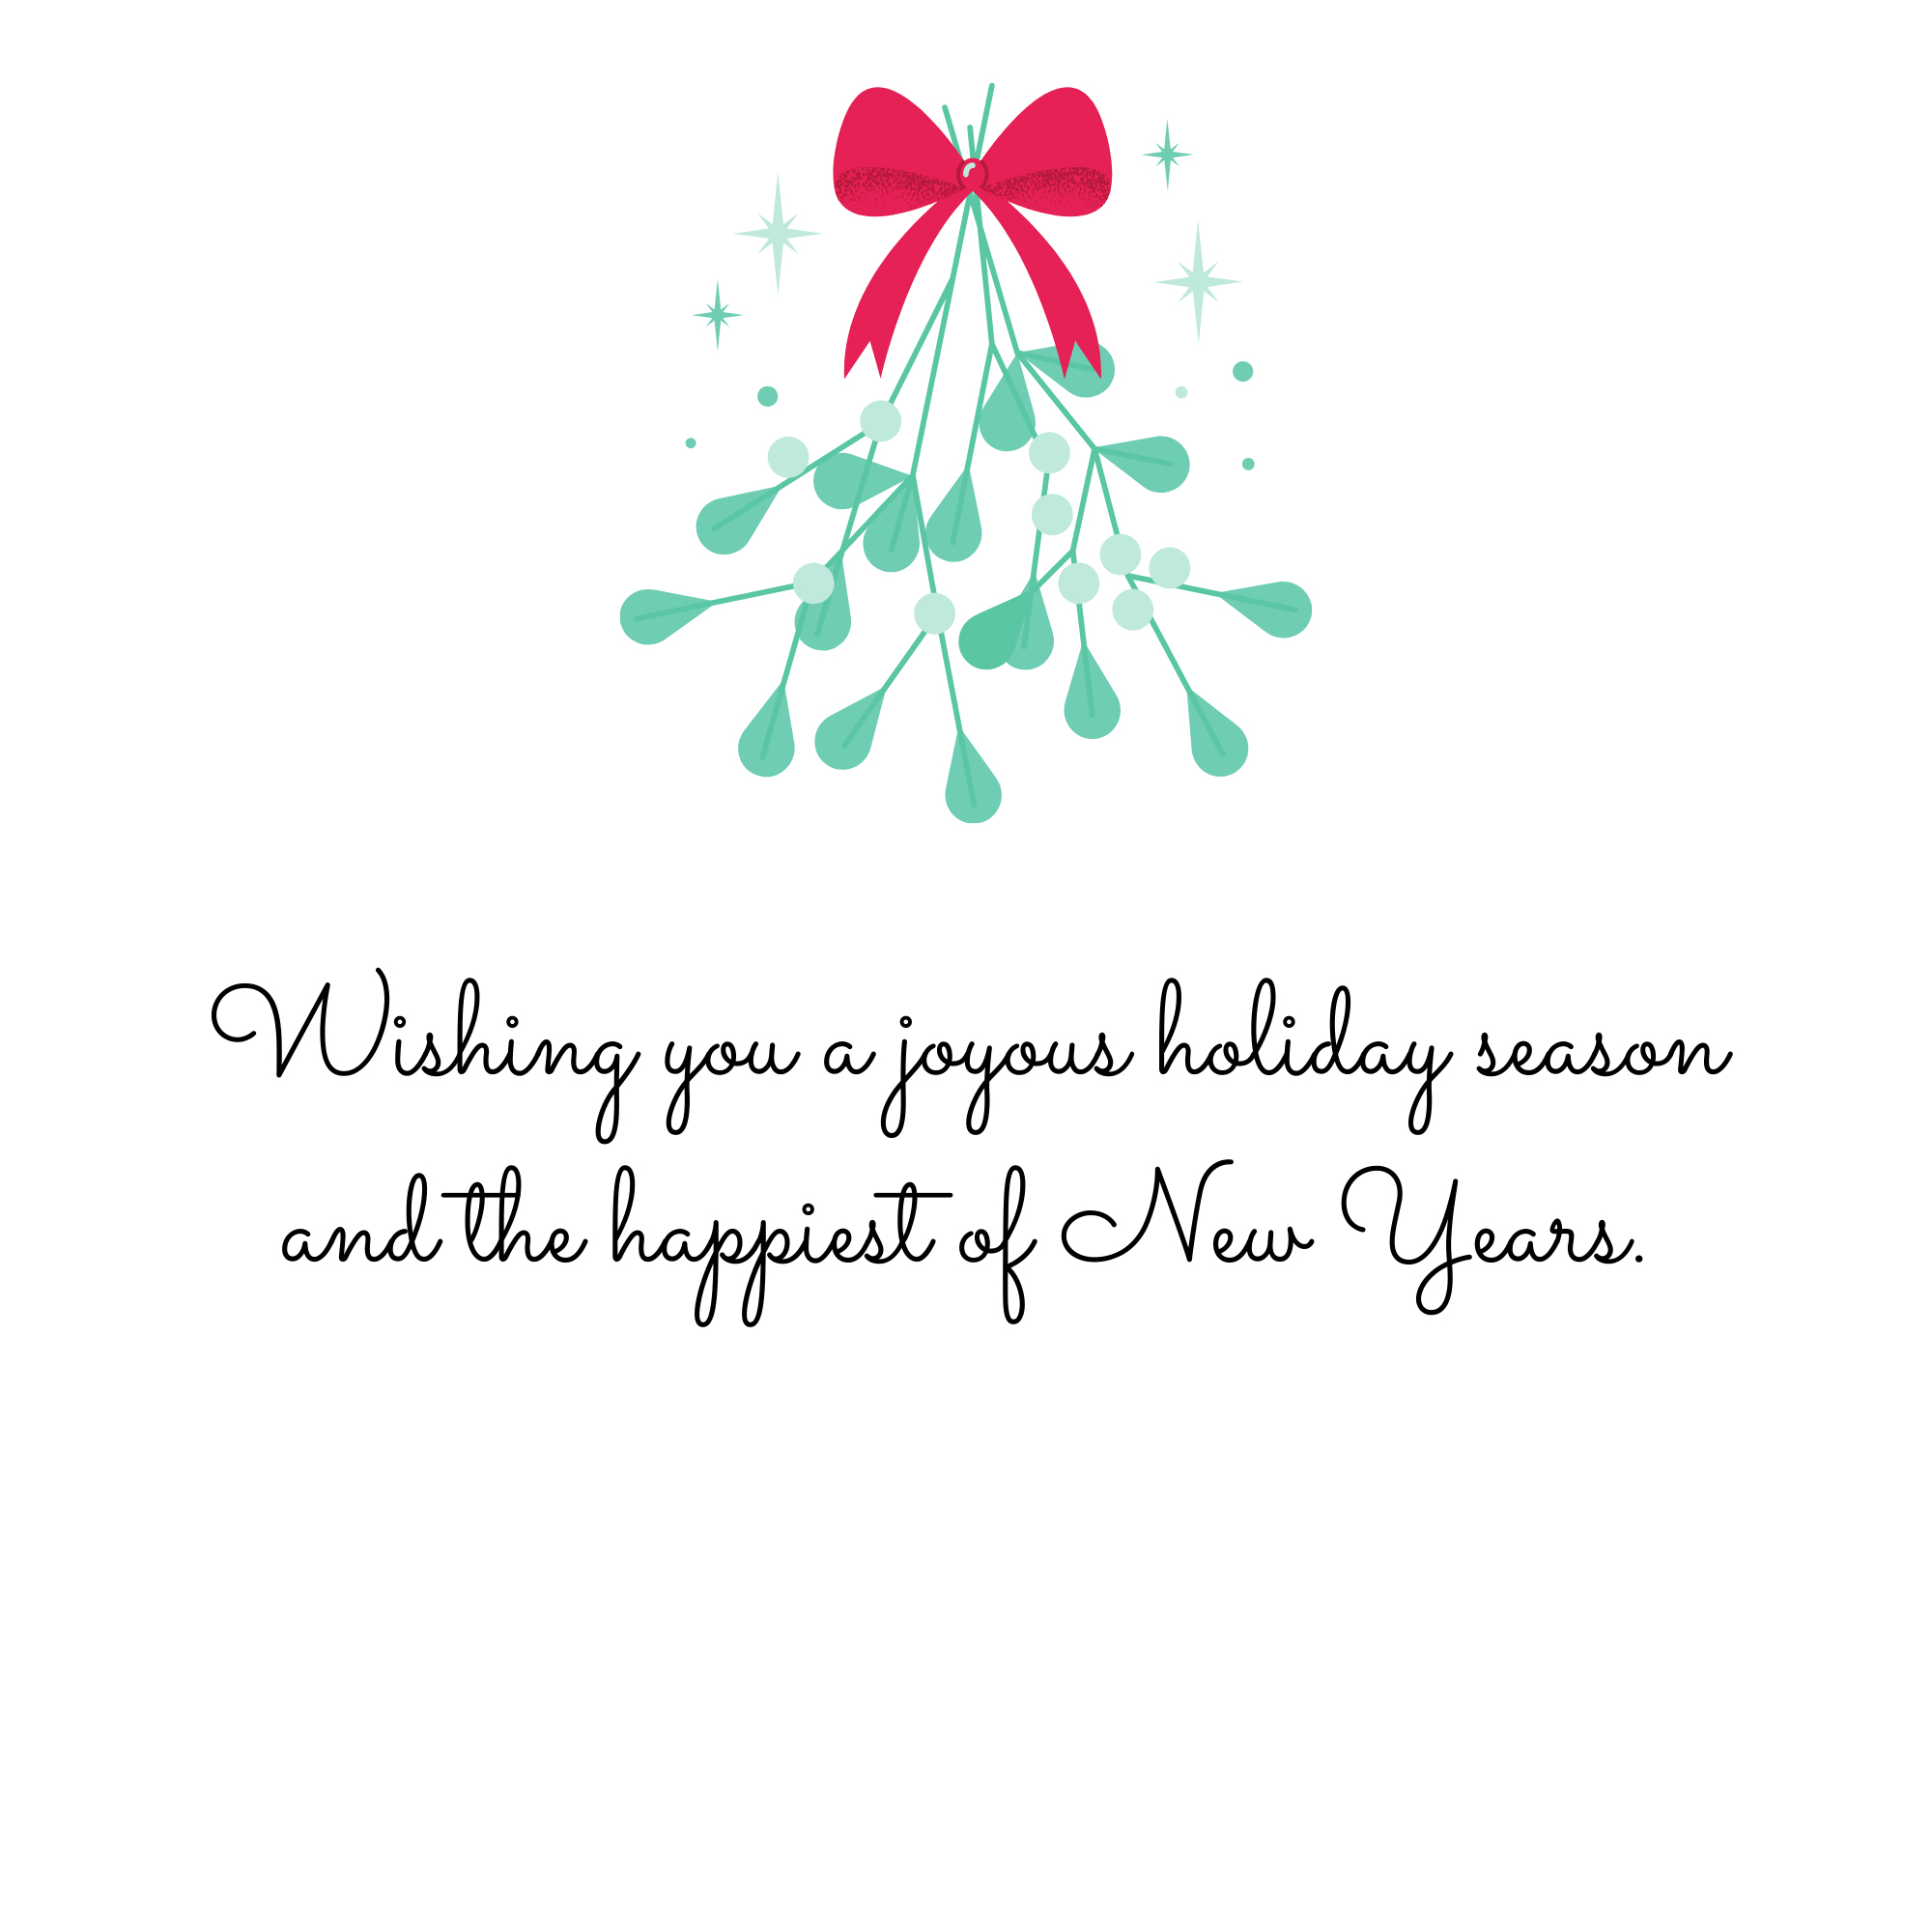 Wishing you a joyous holiday season and the happiest of New Years